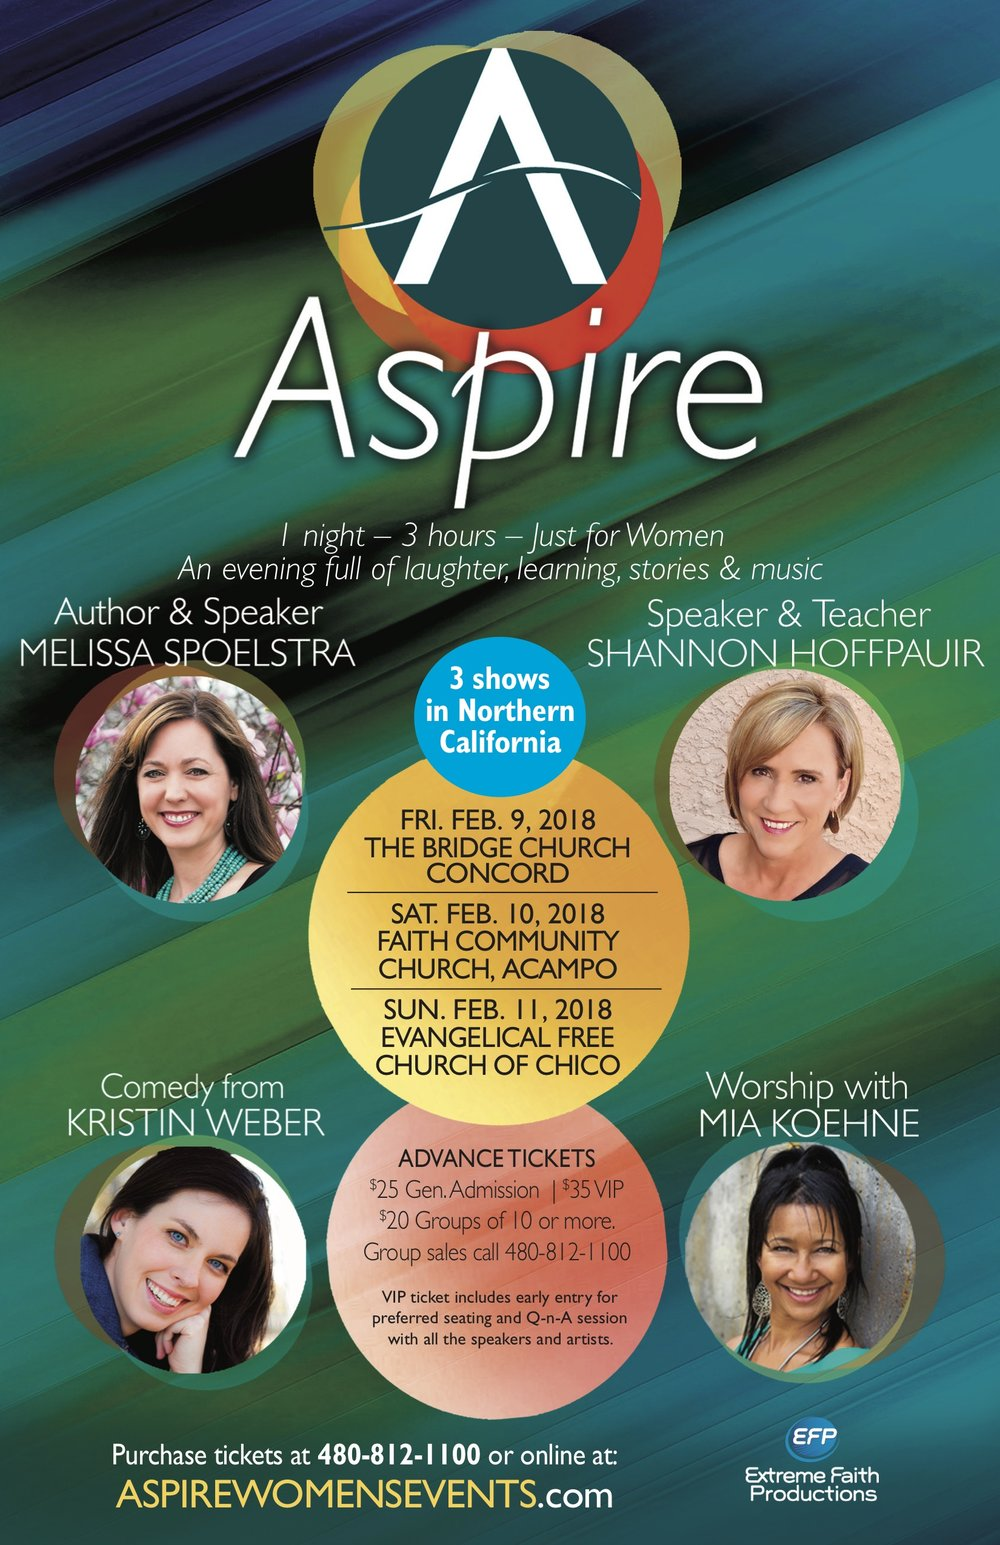 Aspire Feb 2018 3 CA shows.jpg